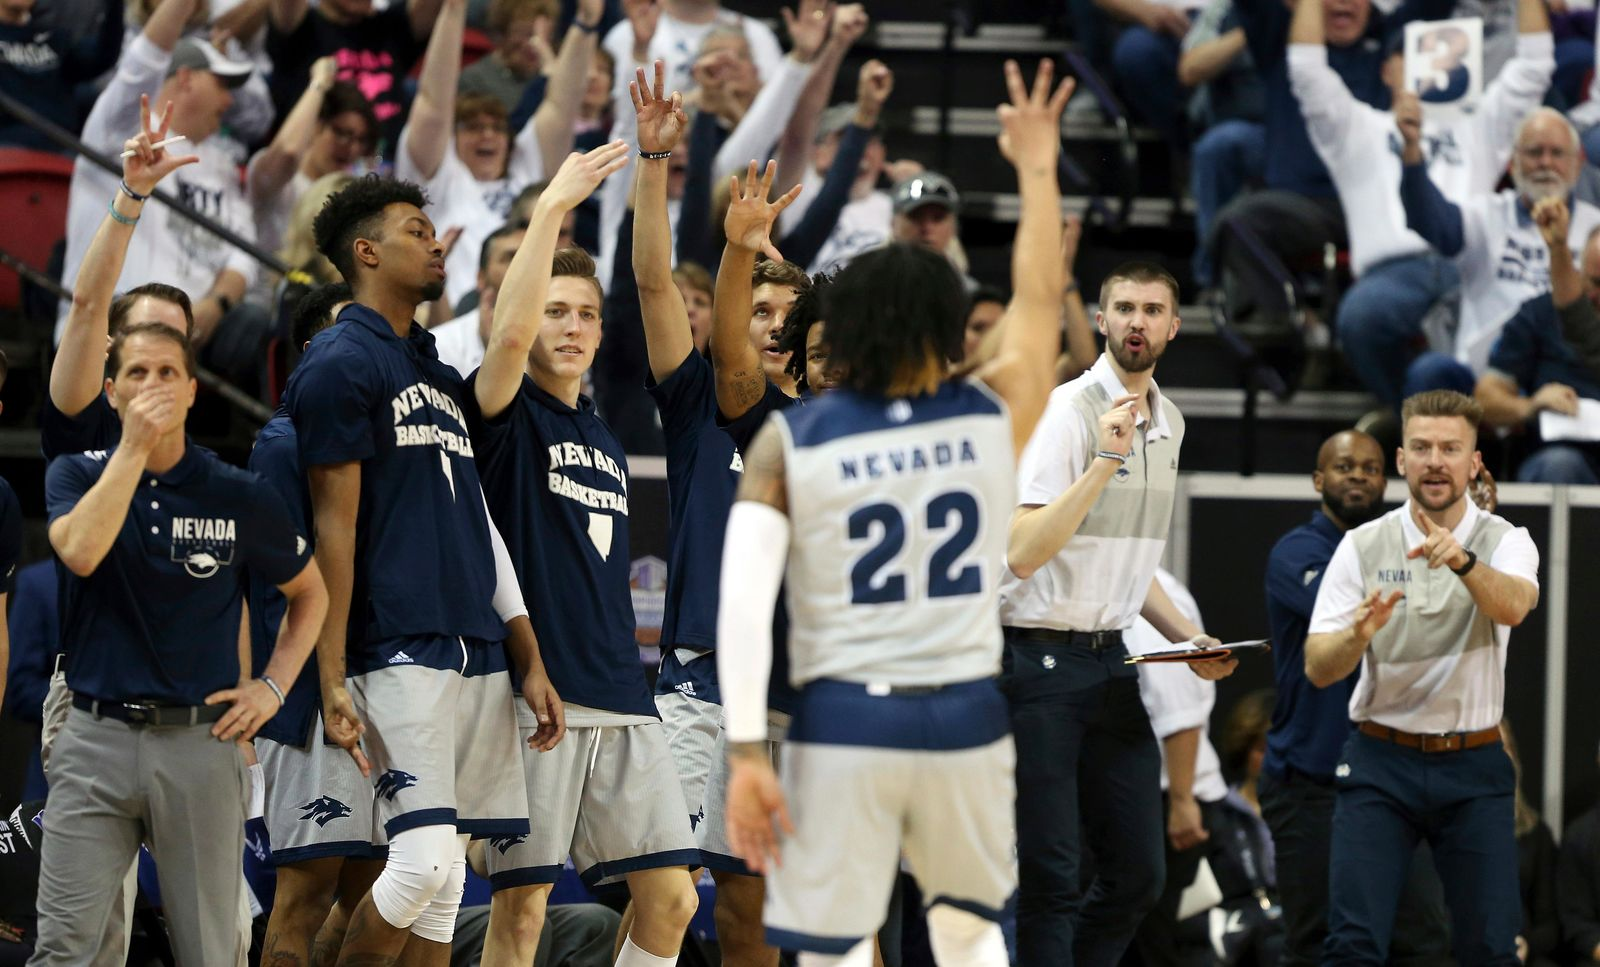 The Nevada bench reacts after Nevada's Jazz Johnson (22) sunk a 3-point shot during the second half of an NCAA college basketball game against Boise State in the Mountain West Conference men's tournament Thursday, March 14, 2019, in Las Vegas. (AP Photo/Isaac Brekken)